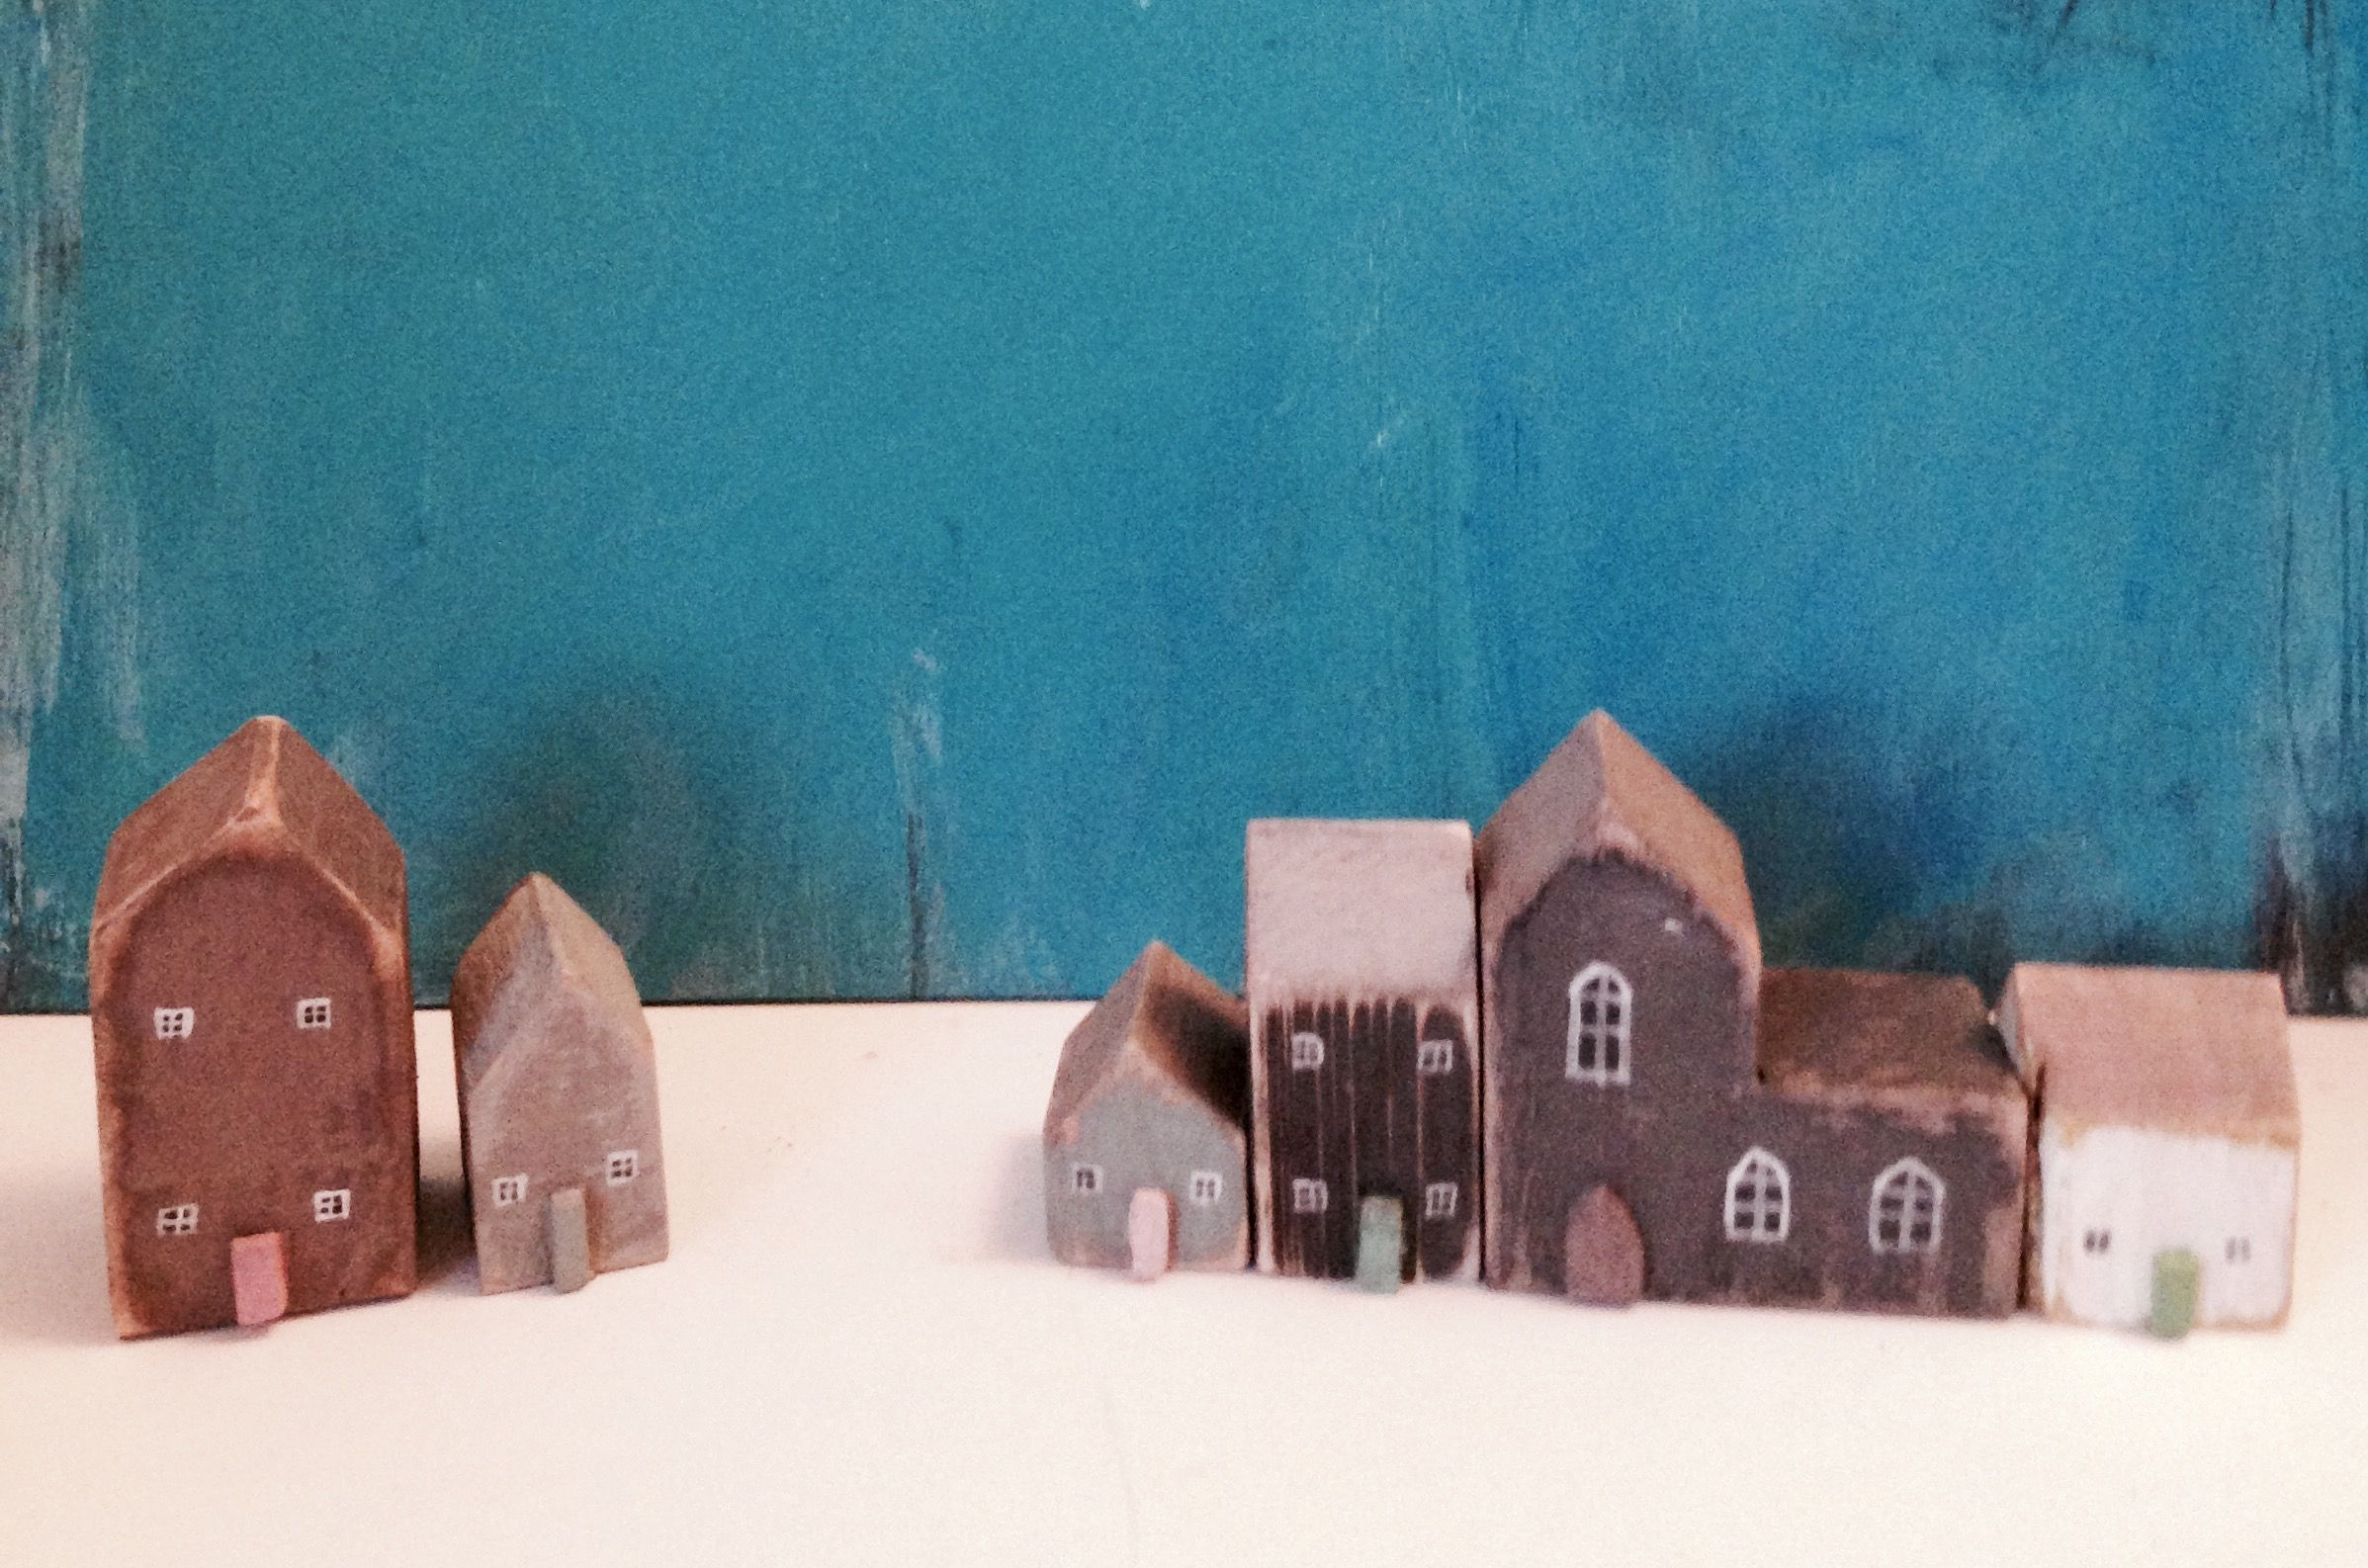 Little reclaimed wooden houses and churches £5-£7.00 each